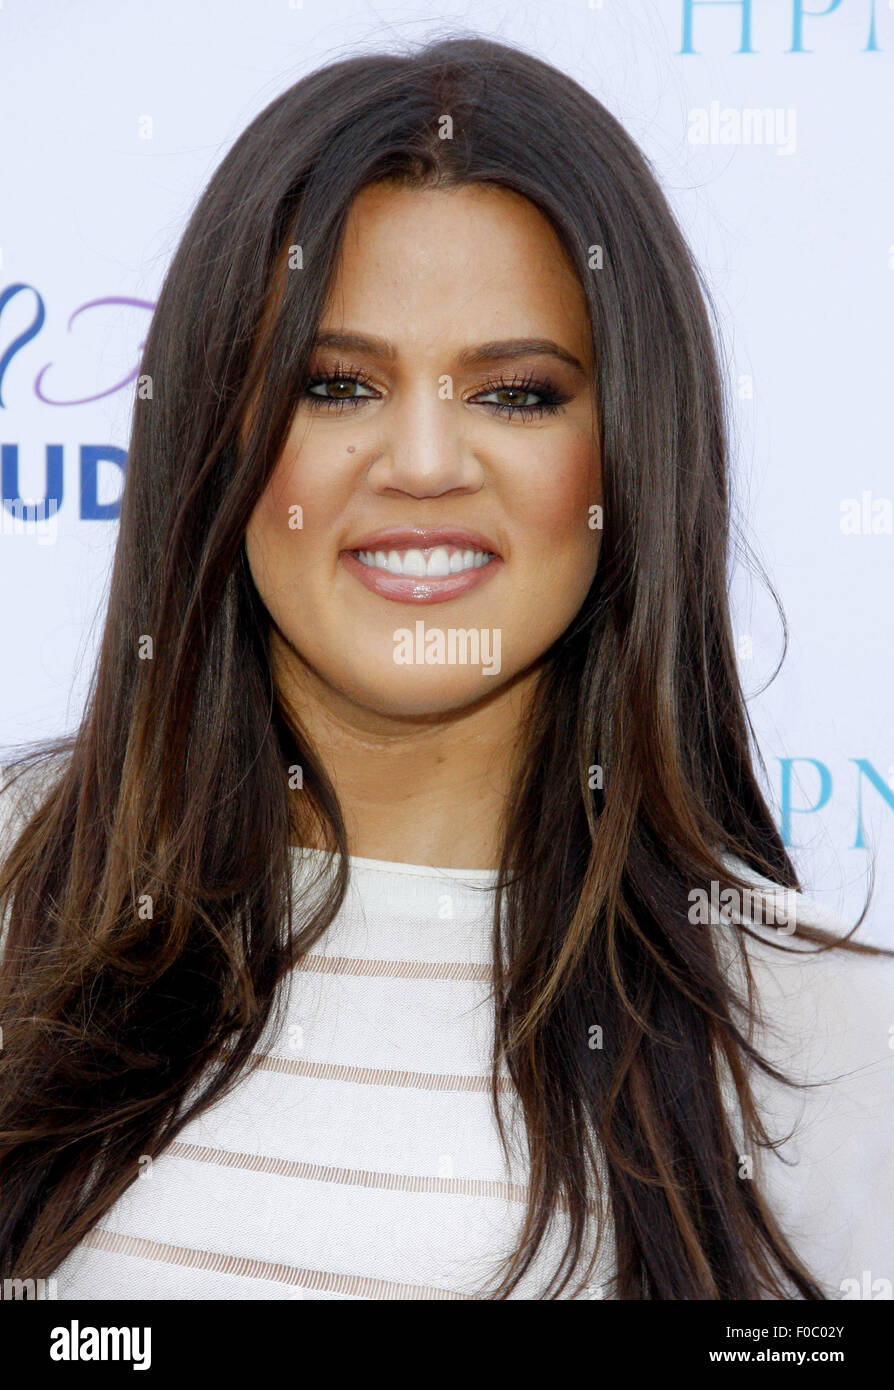 Khloe Kardashian at the HPNOTIQ Harmonie Cocktail Recipe Launch held at the Mr. C Beverly Hills, USA on August 2, - Stock Image